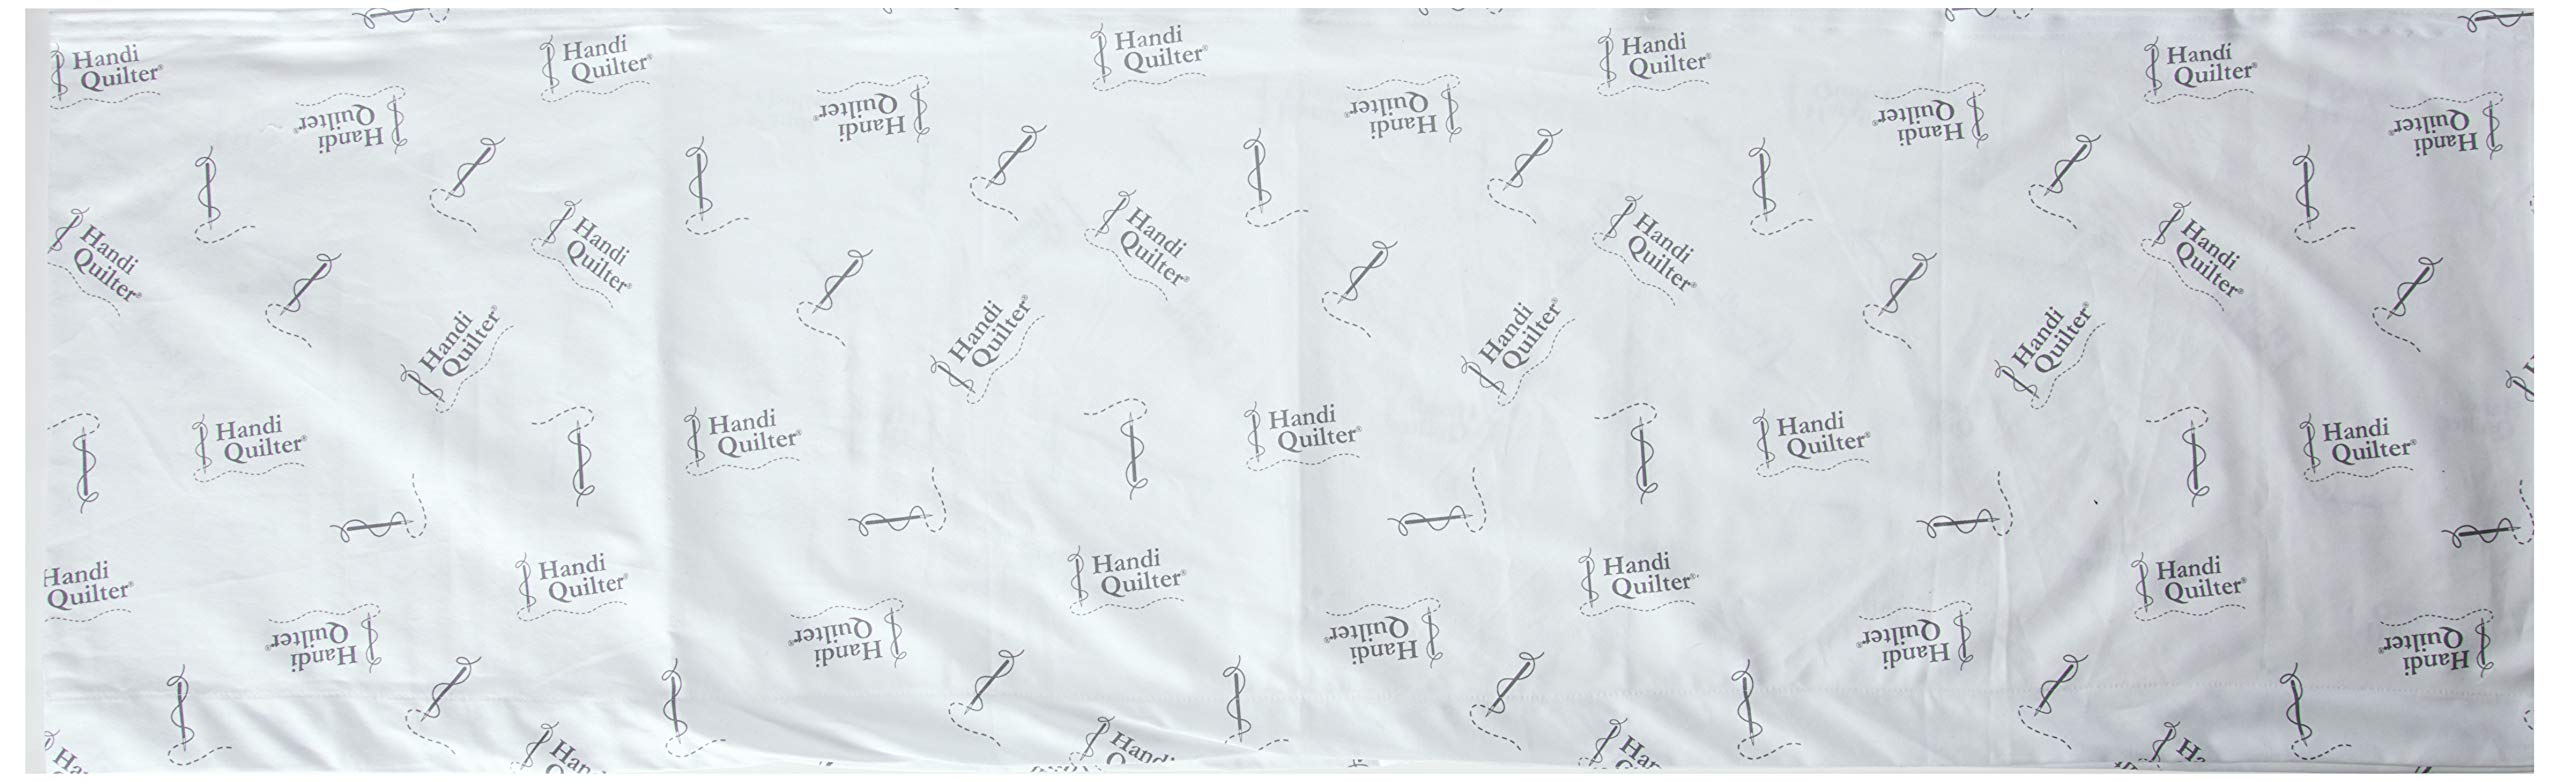 Handi Quilter, Inc 4336993914 9.5x17 Logo Leader Set by Handi Quilter, Inc